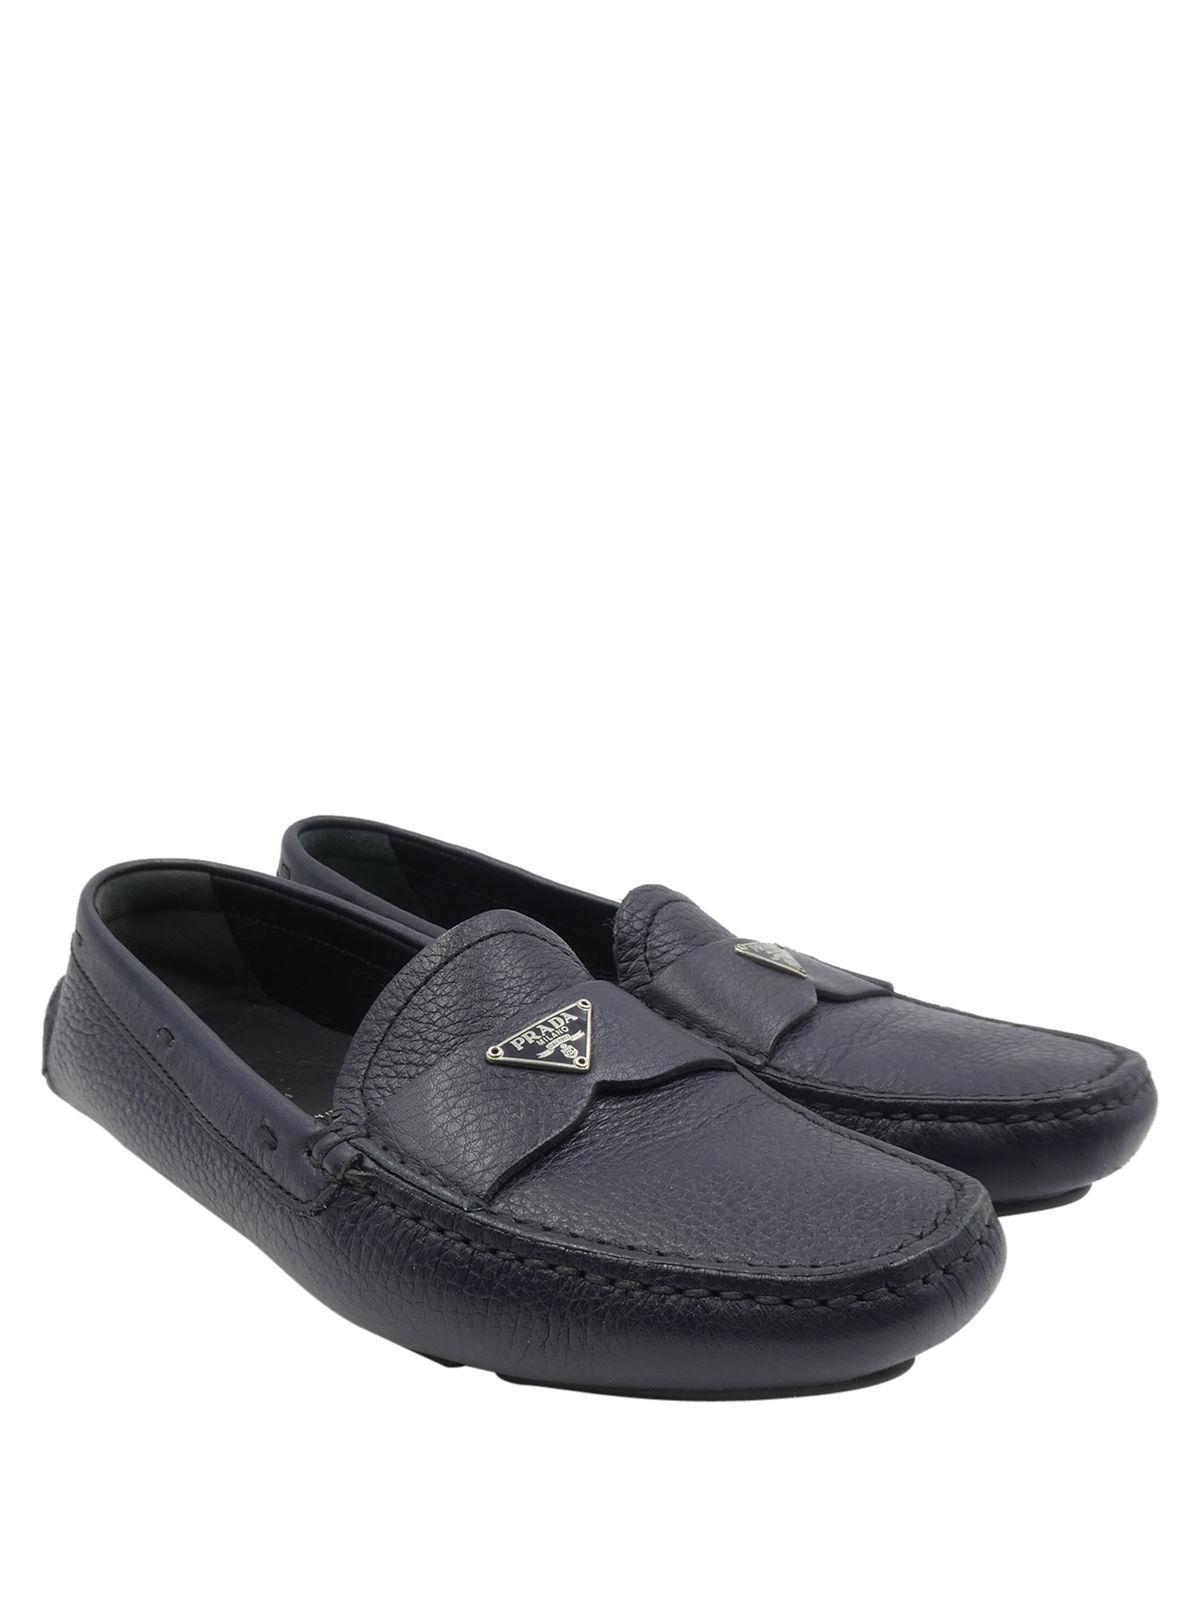 Loafers for Women On Sale, Black, Leather, 2017, 4.5 6 8.5 Prada